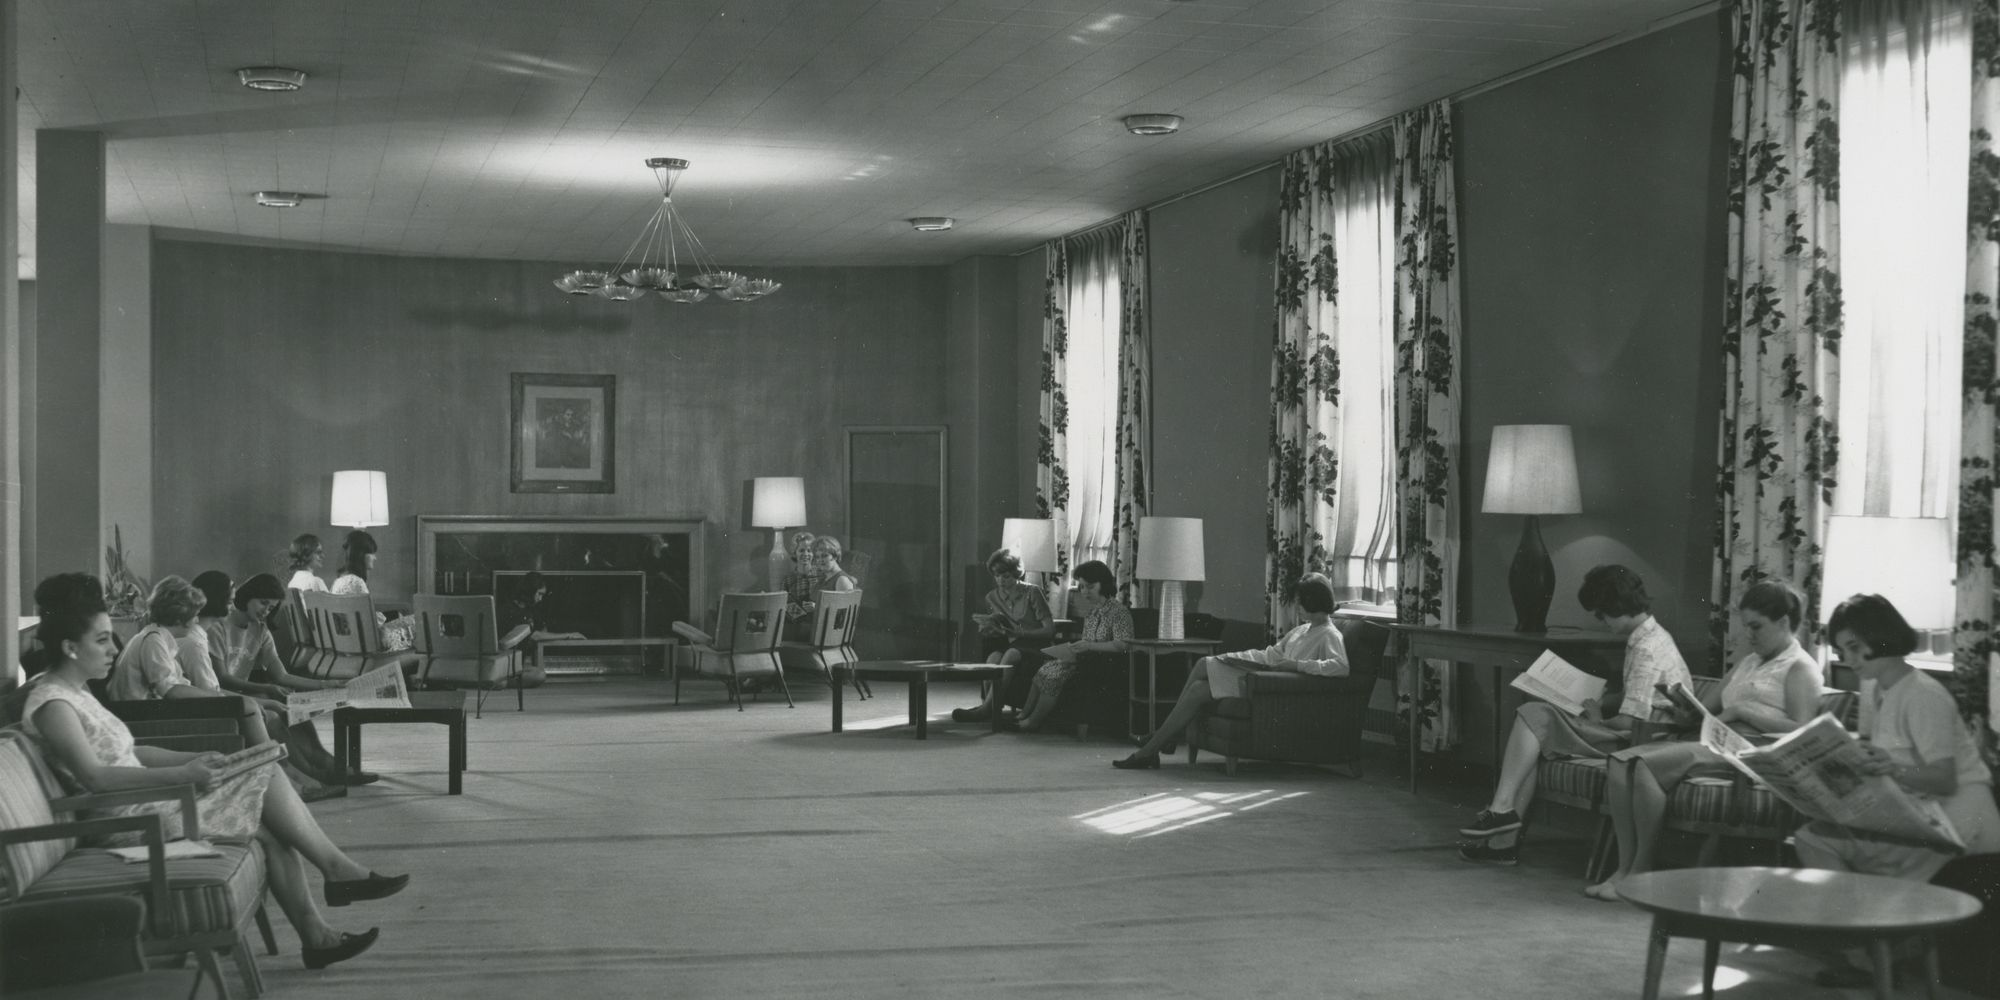 The interior of Arnold Hall early in its life.